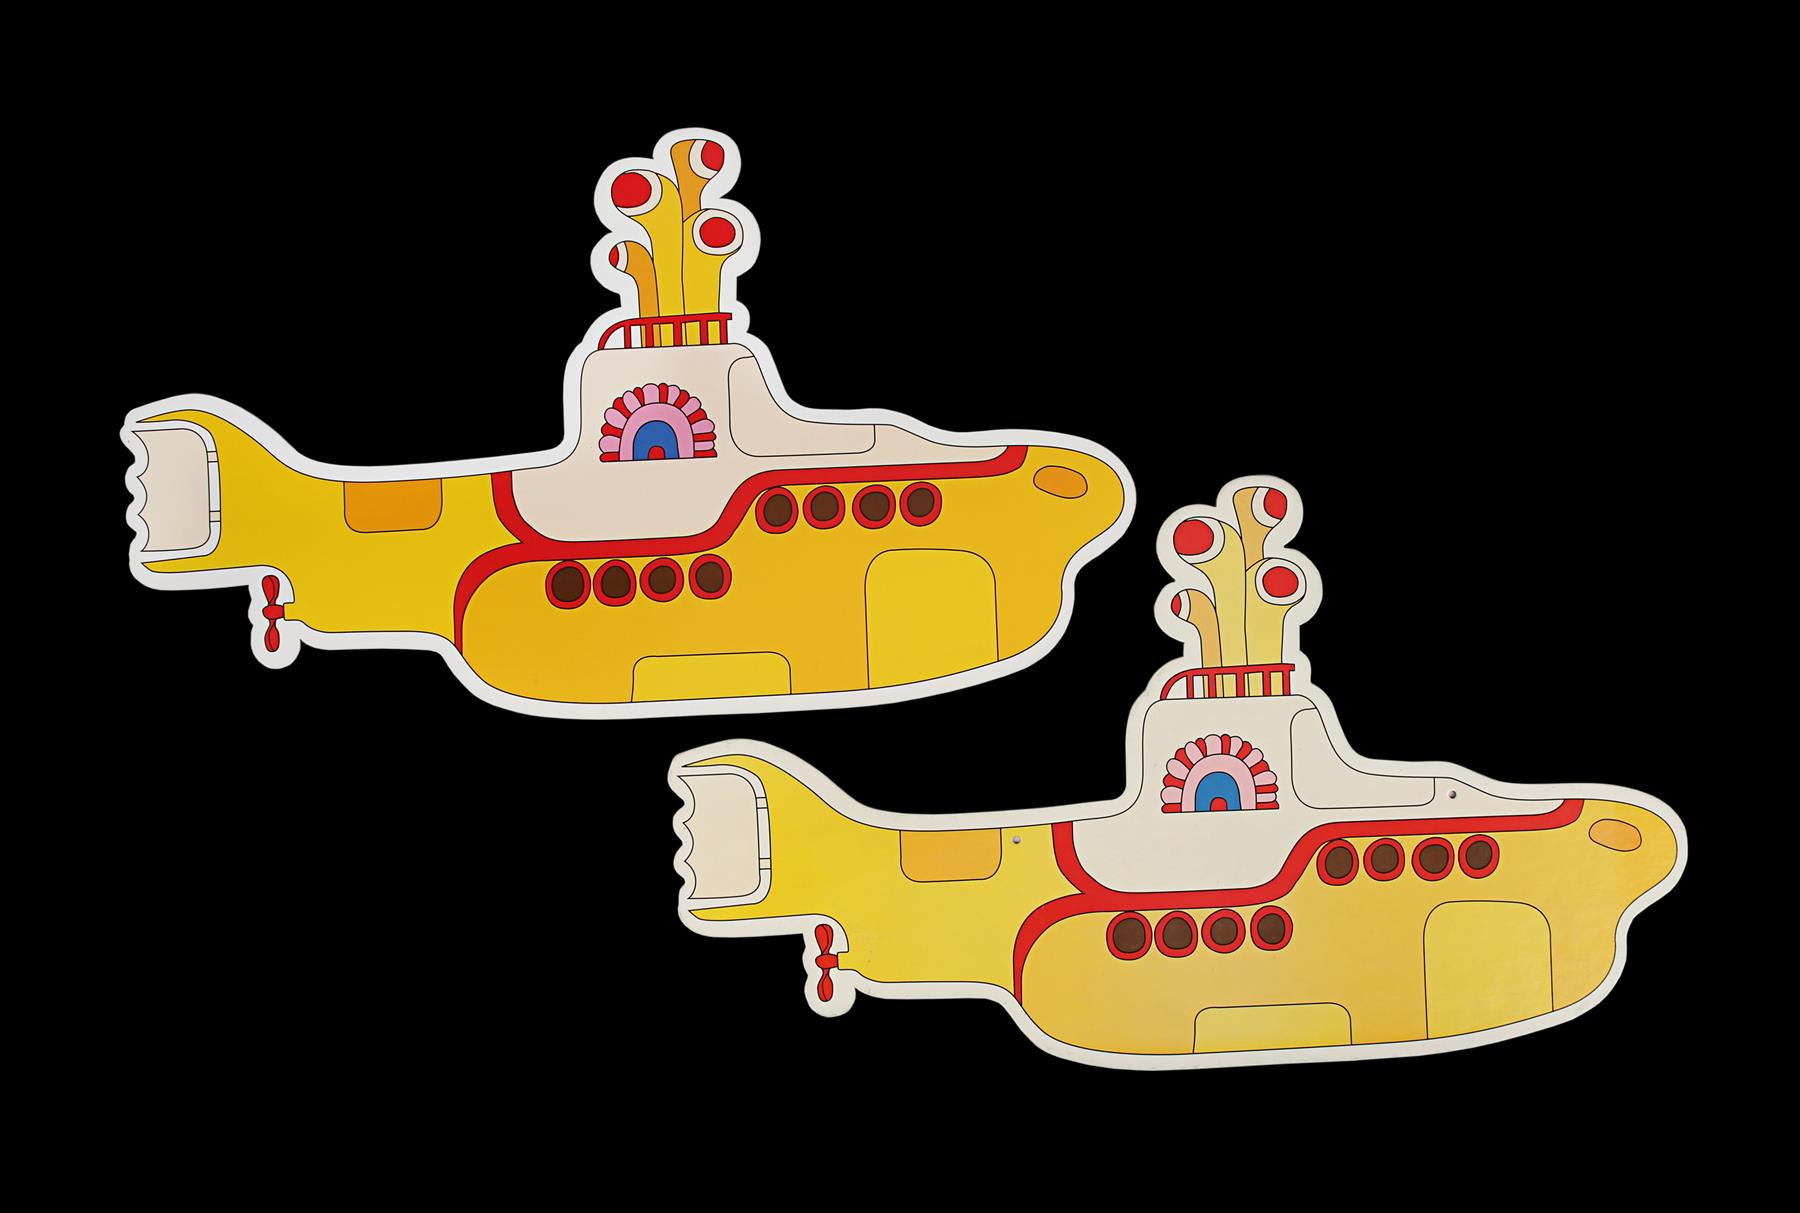 YELLOW SUBMARINE (1968) - Promotional and Marketing Items, 1999 - Image 7 of 9